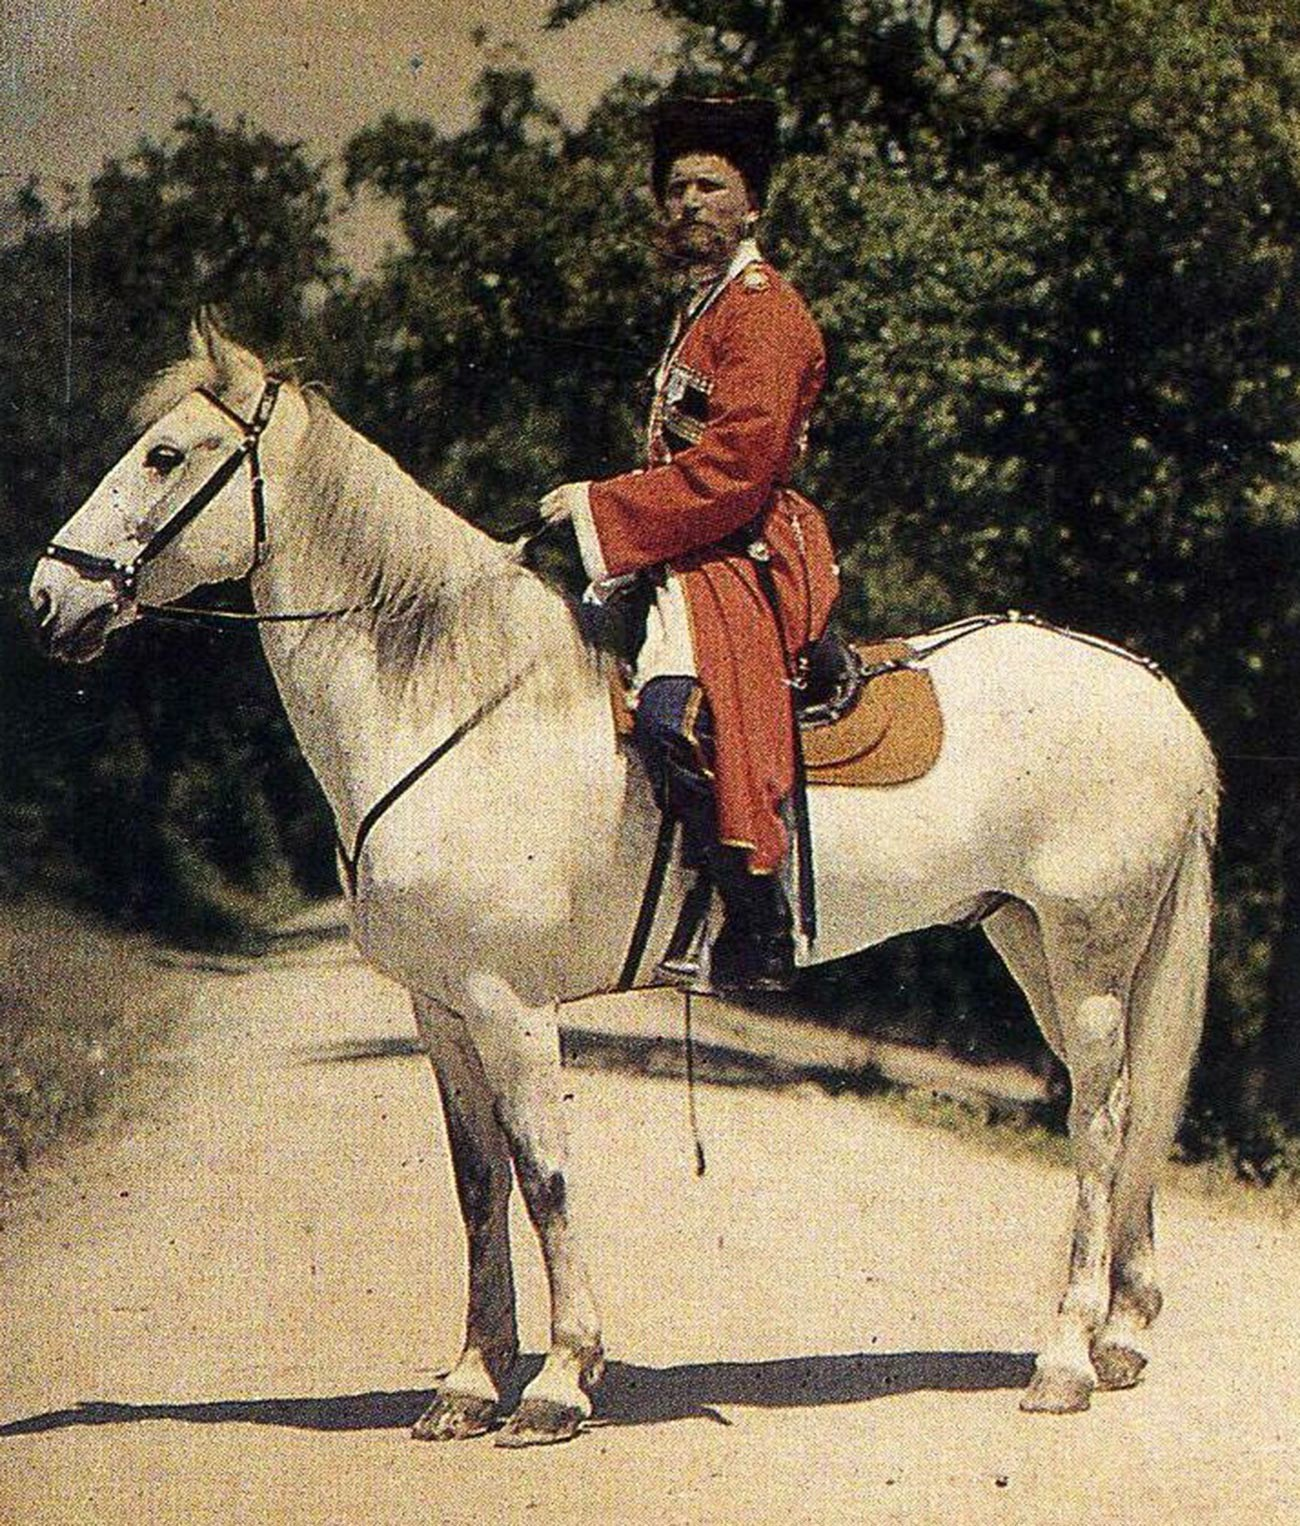 A Cossack from the Emperor's personal guard, 1910s